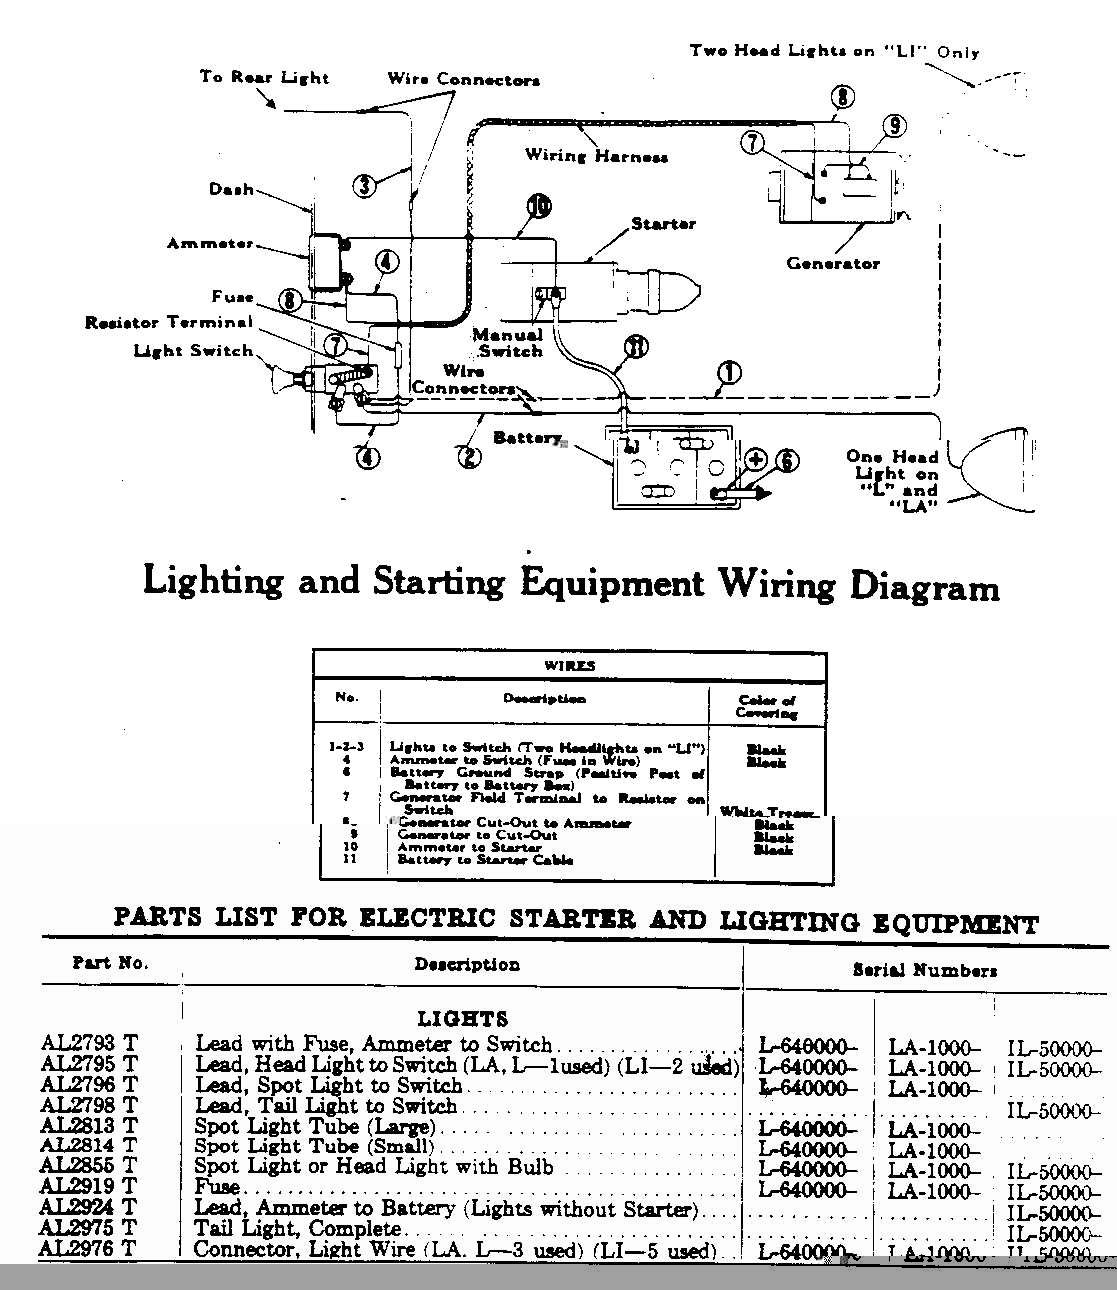 lwiring wiring diagram for 3600 ford tractor the wiring diagram case 220 wiring diagram at mifinder.co